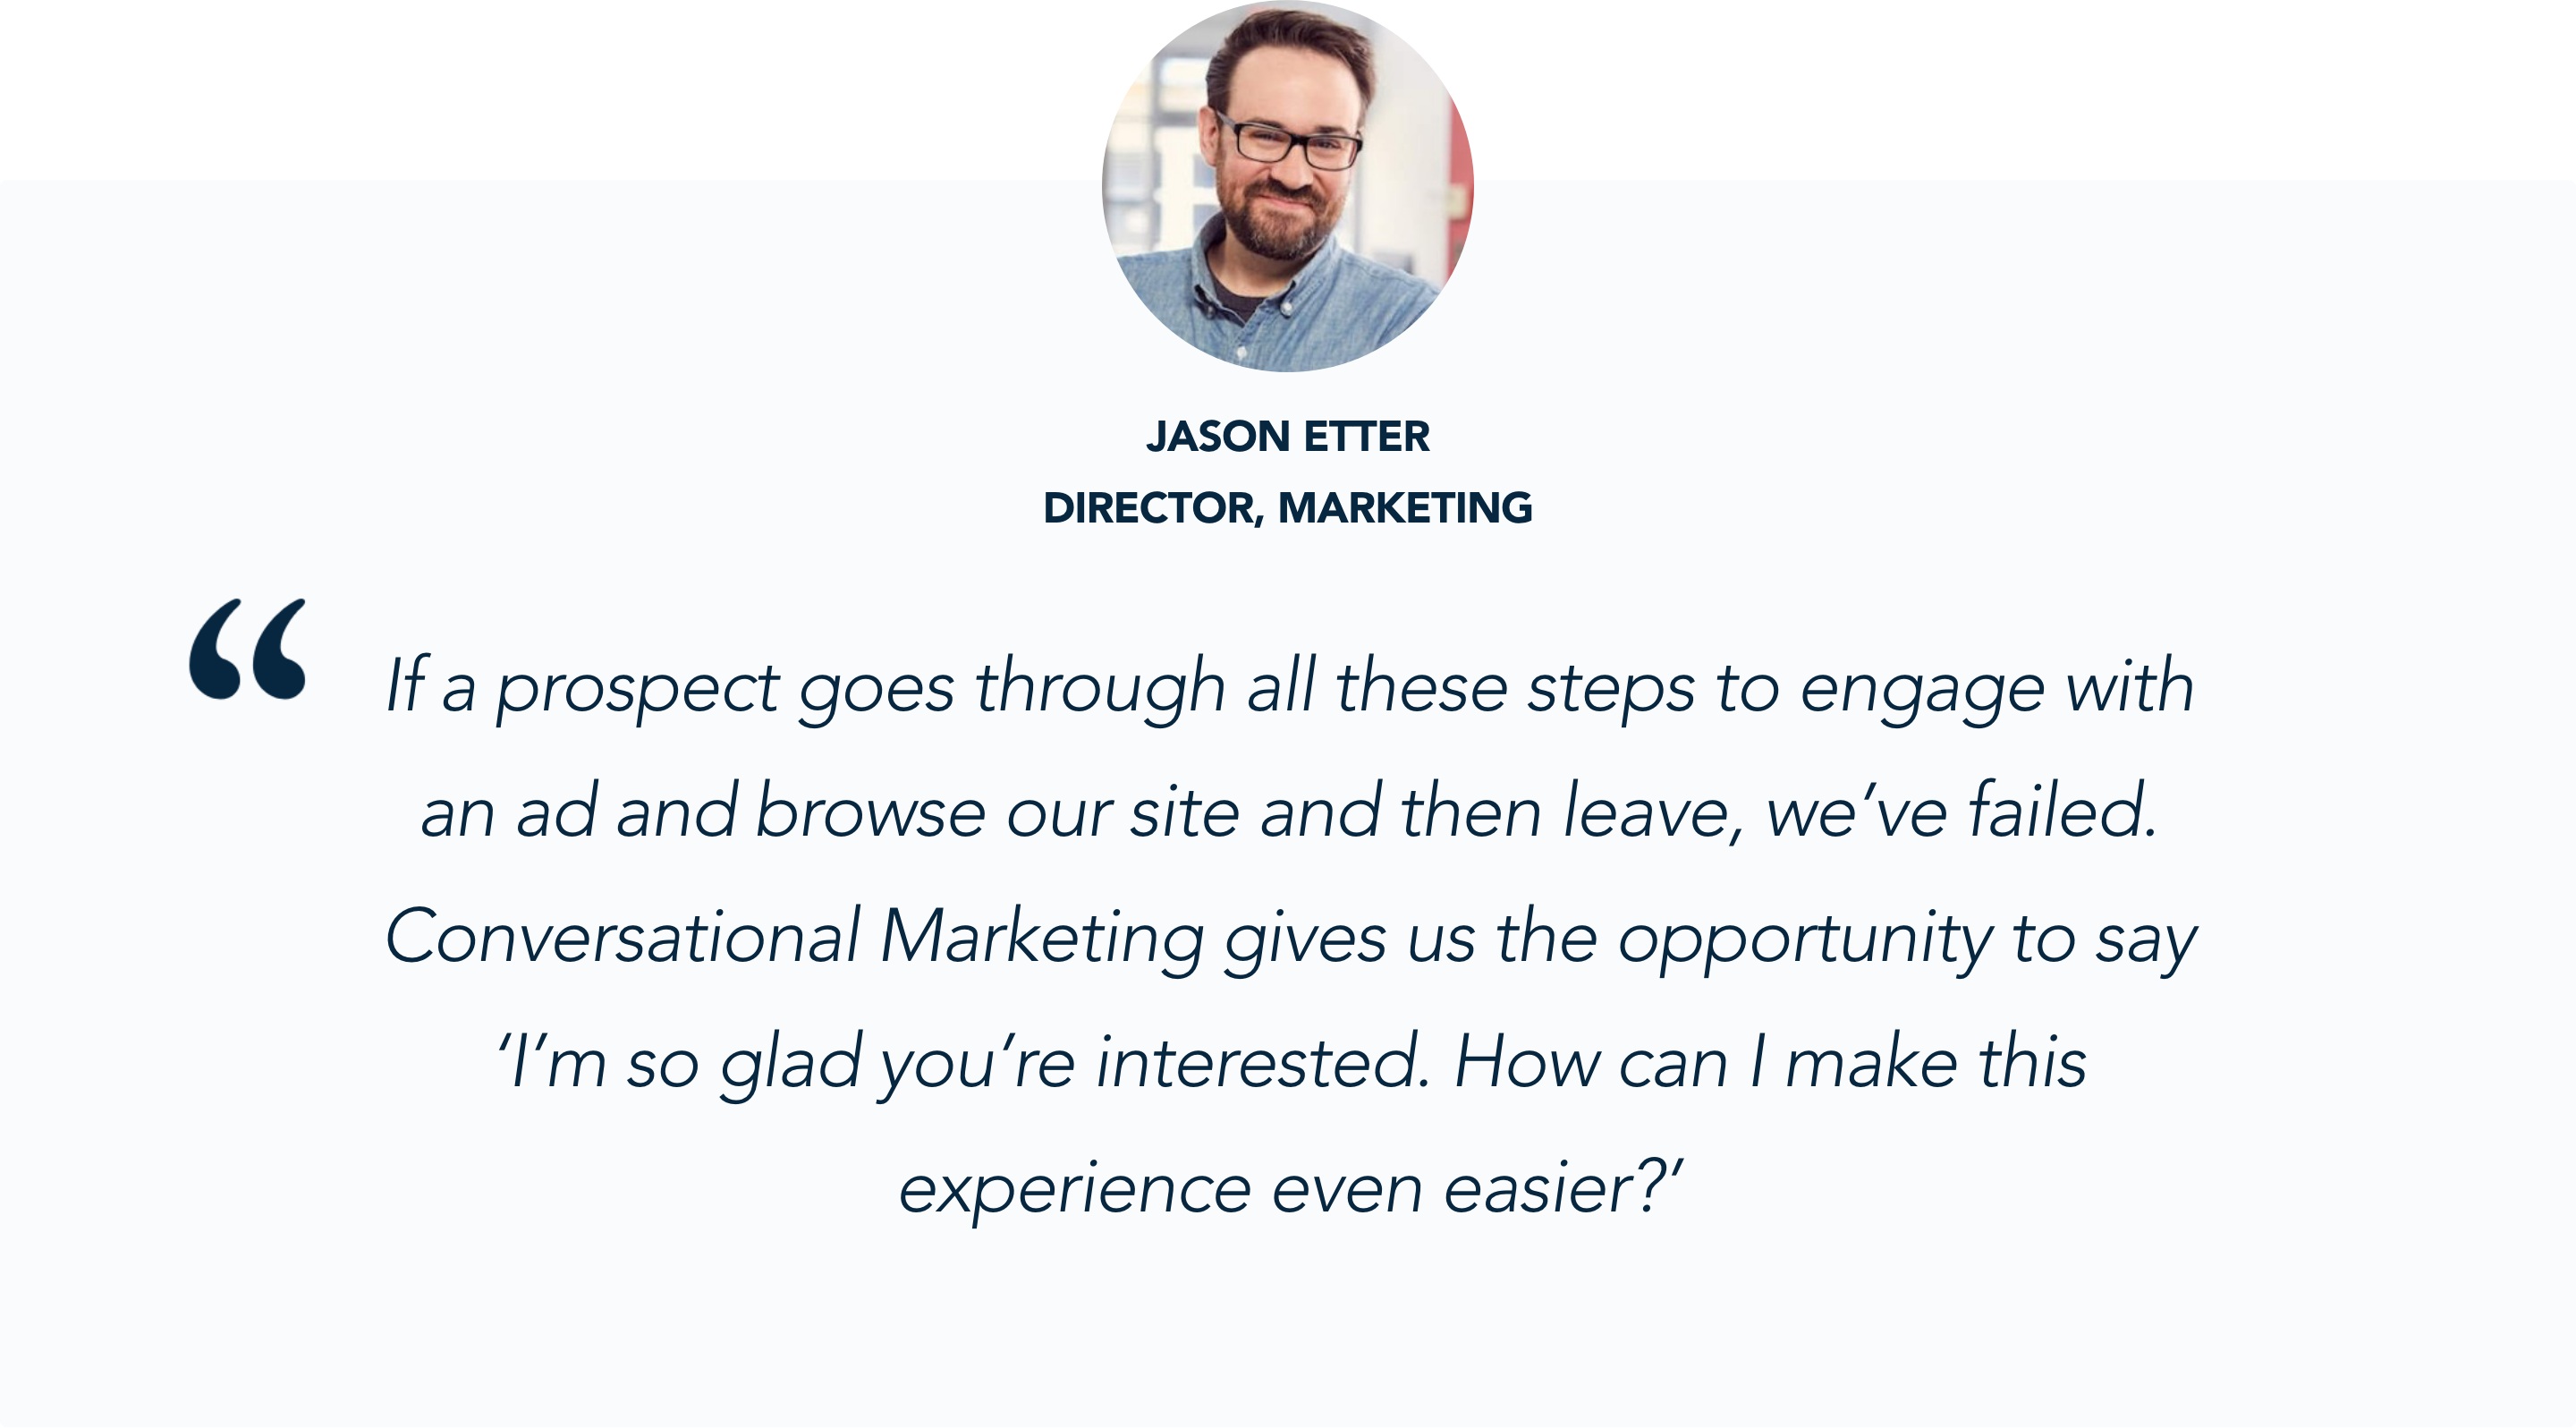 Jason Etter, Staffbase, talks about the promise of conversational marketing for their website